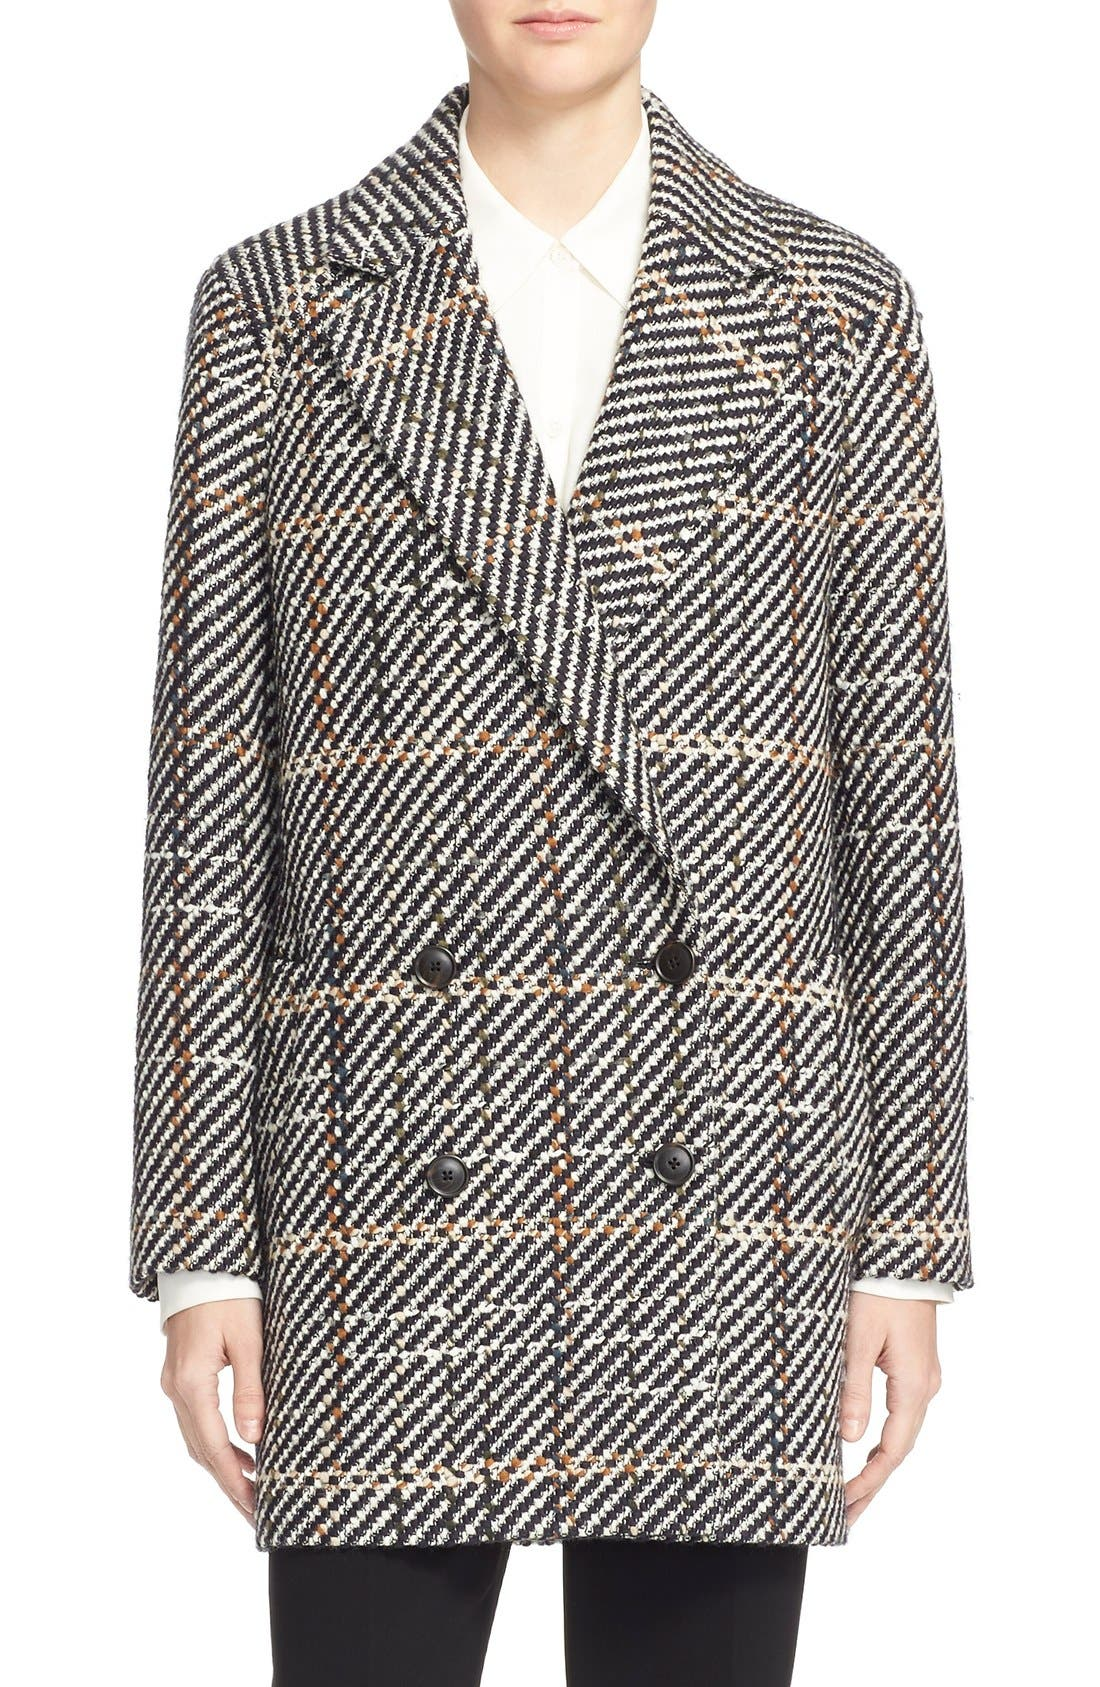 Main Image - Theory Graphic Tweed Coat